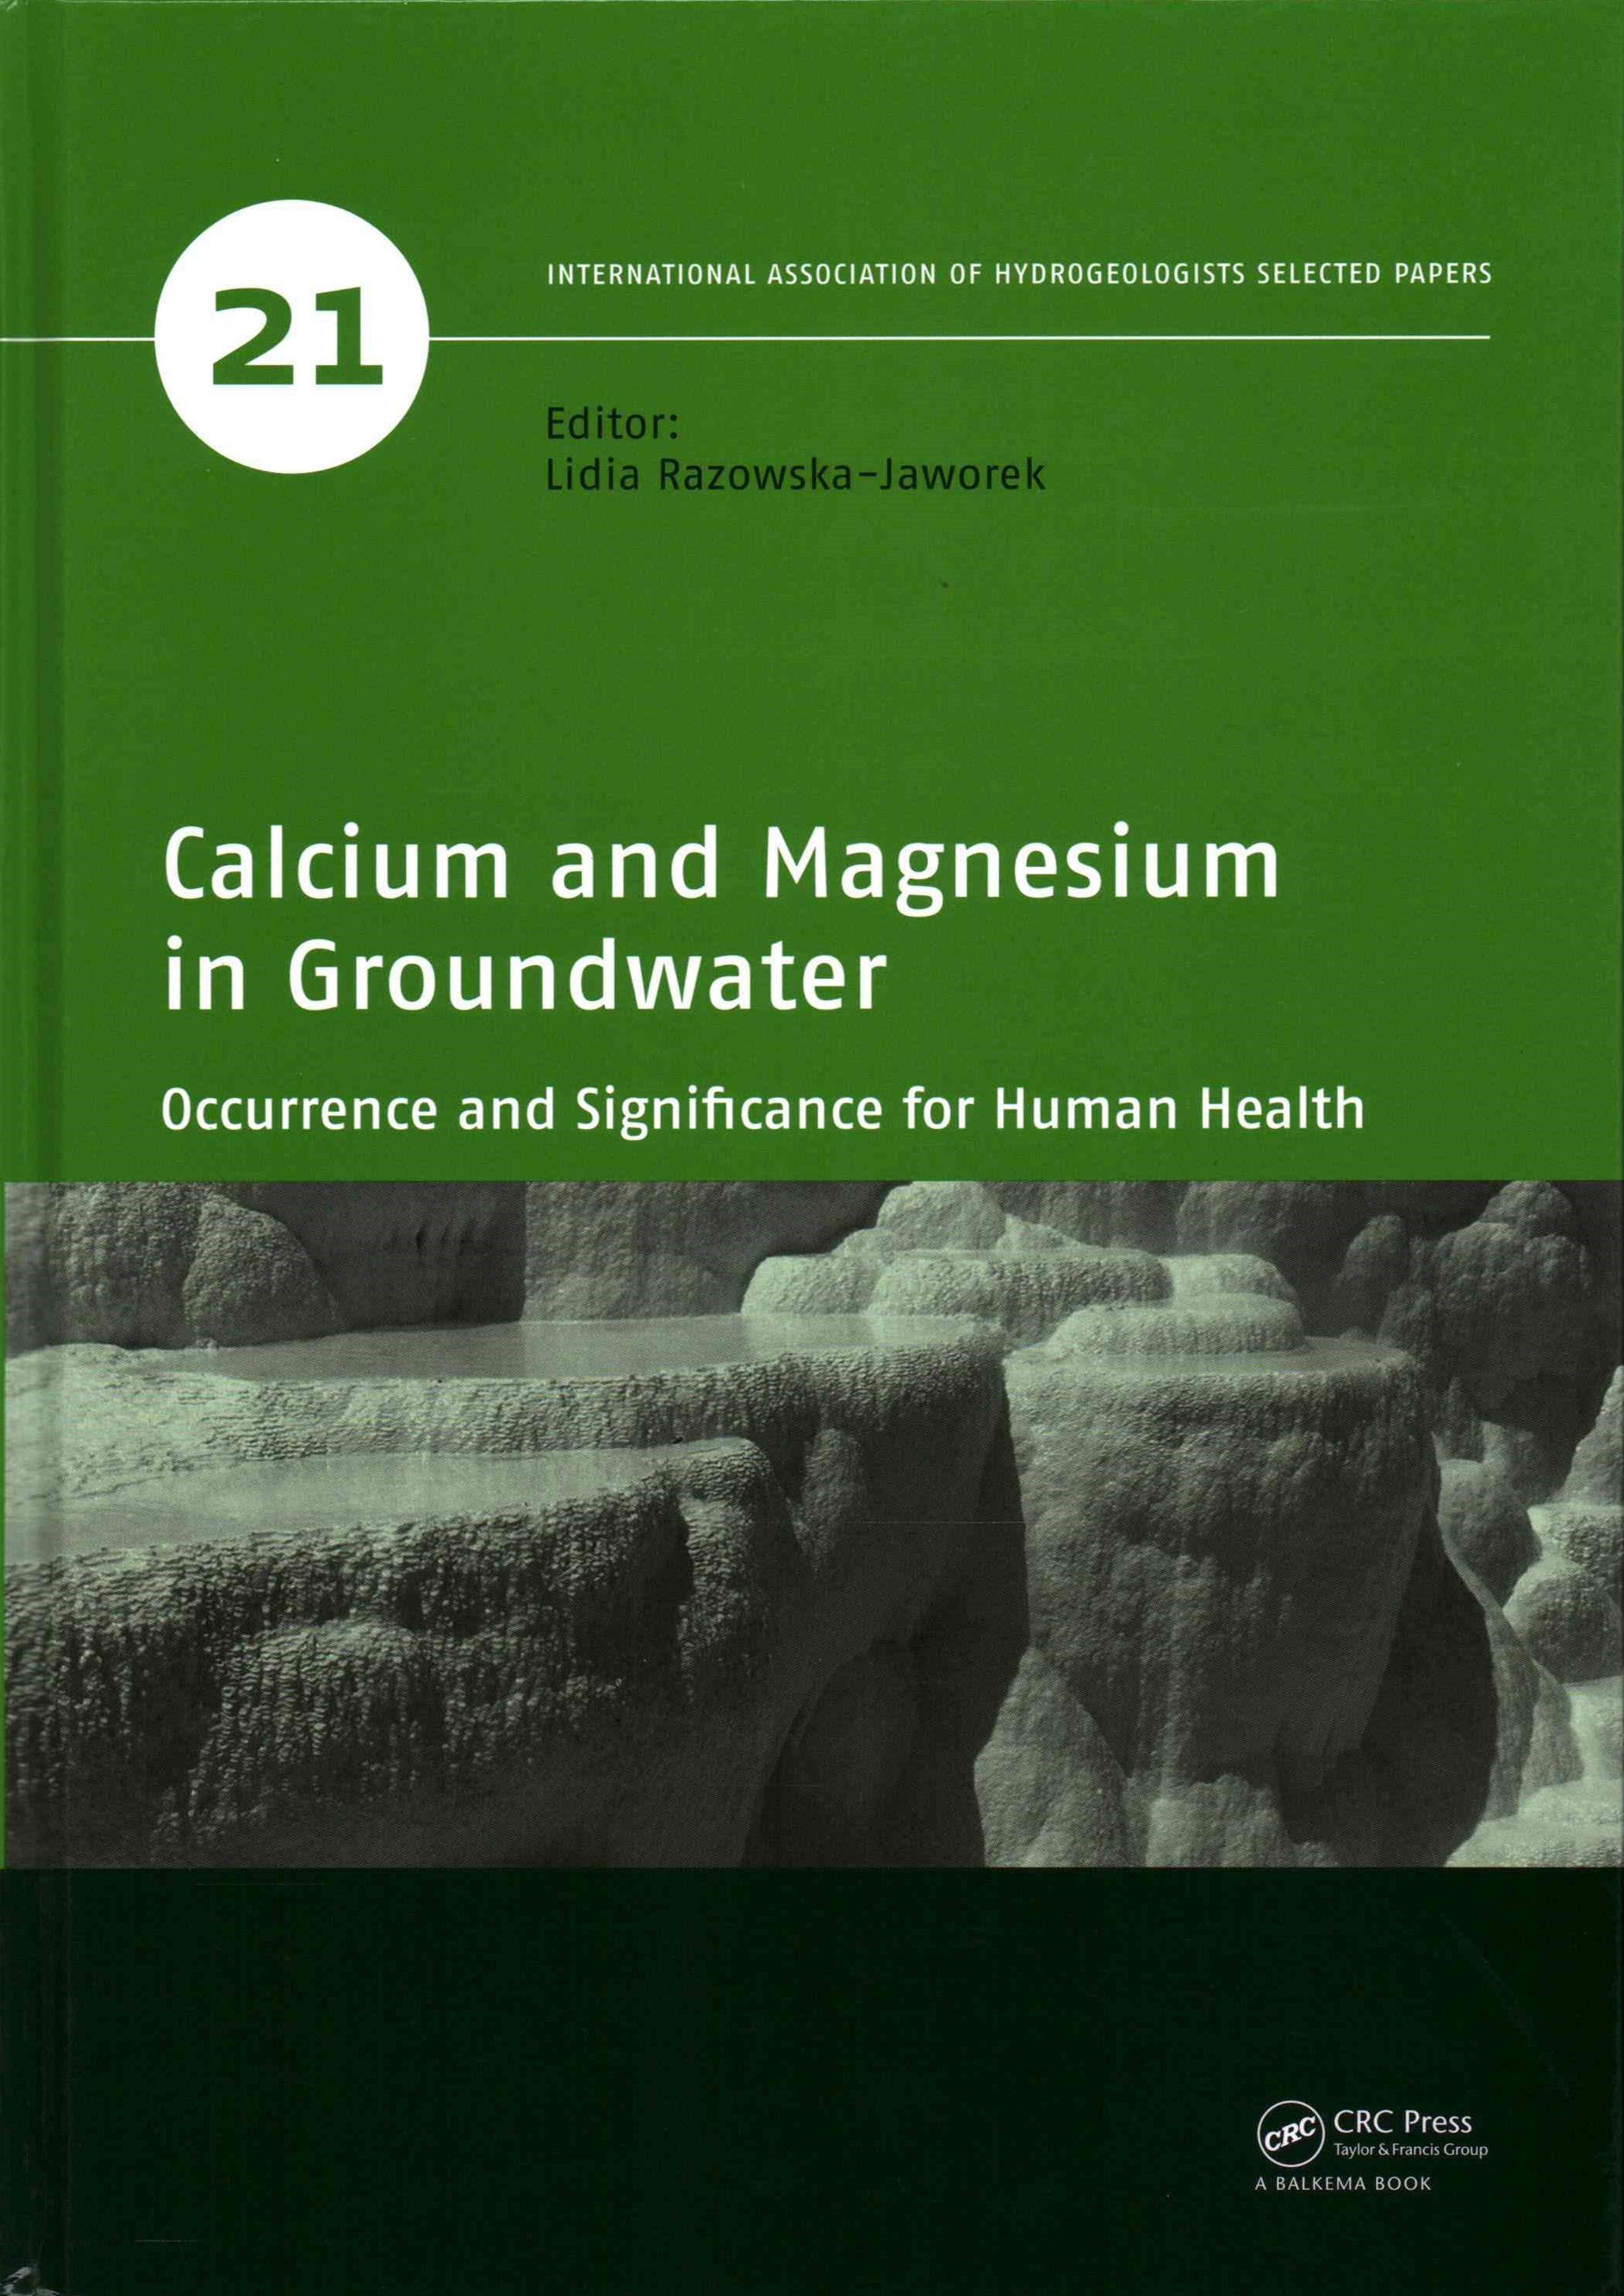 Calcium and Magnesium in Groundwater